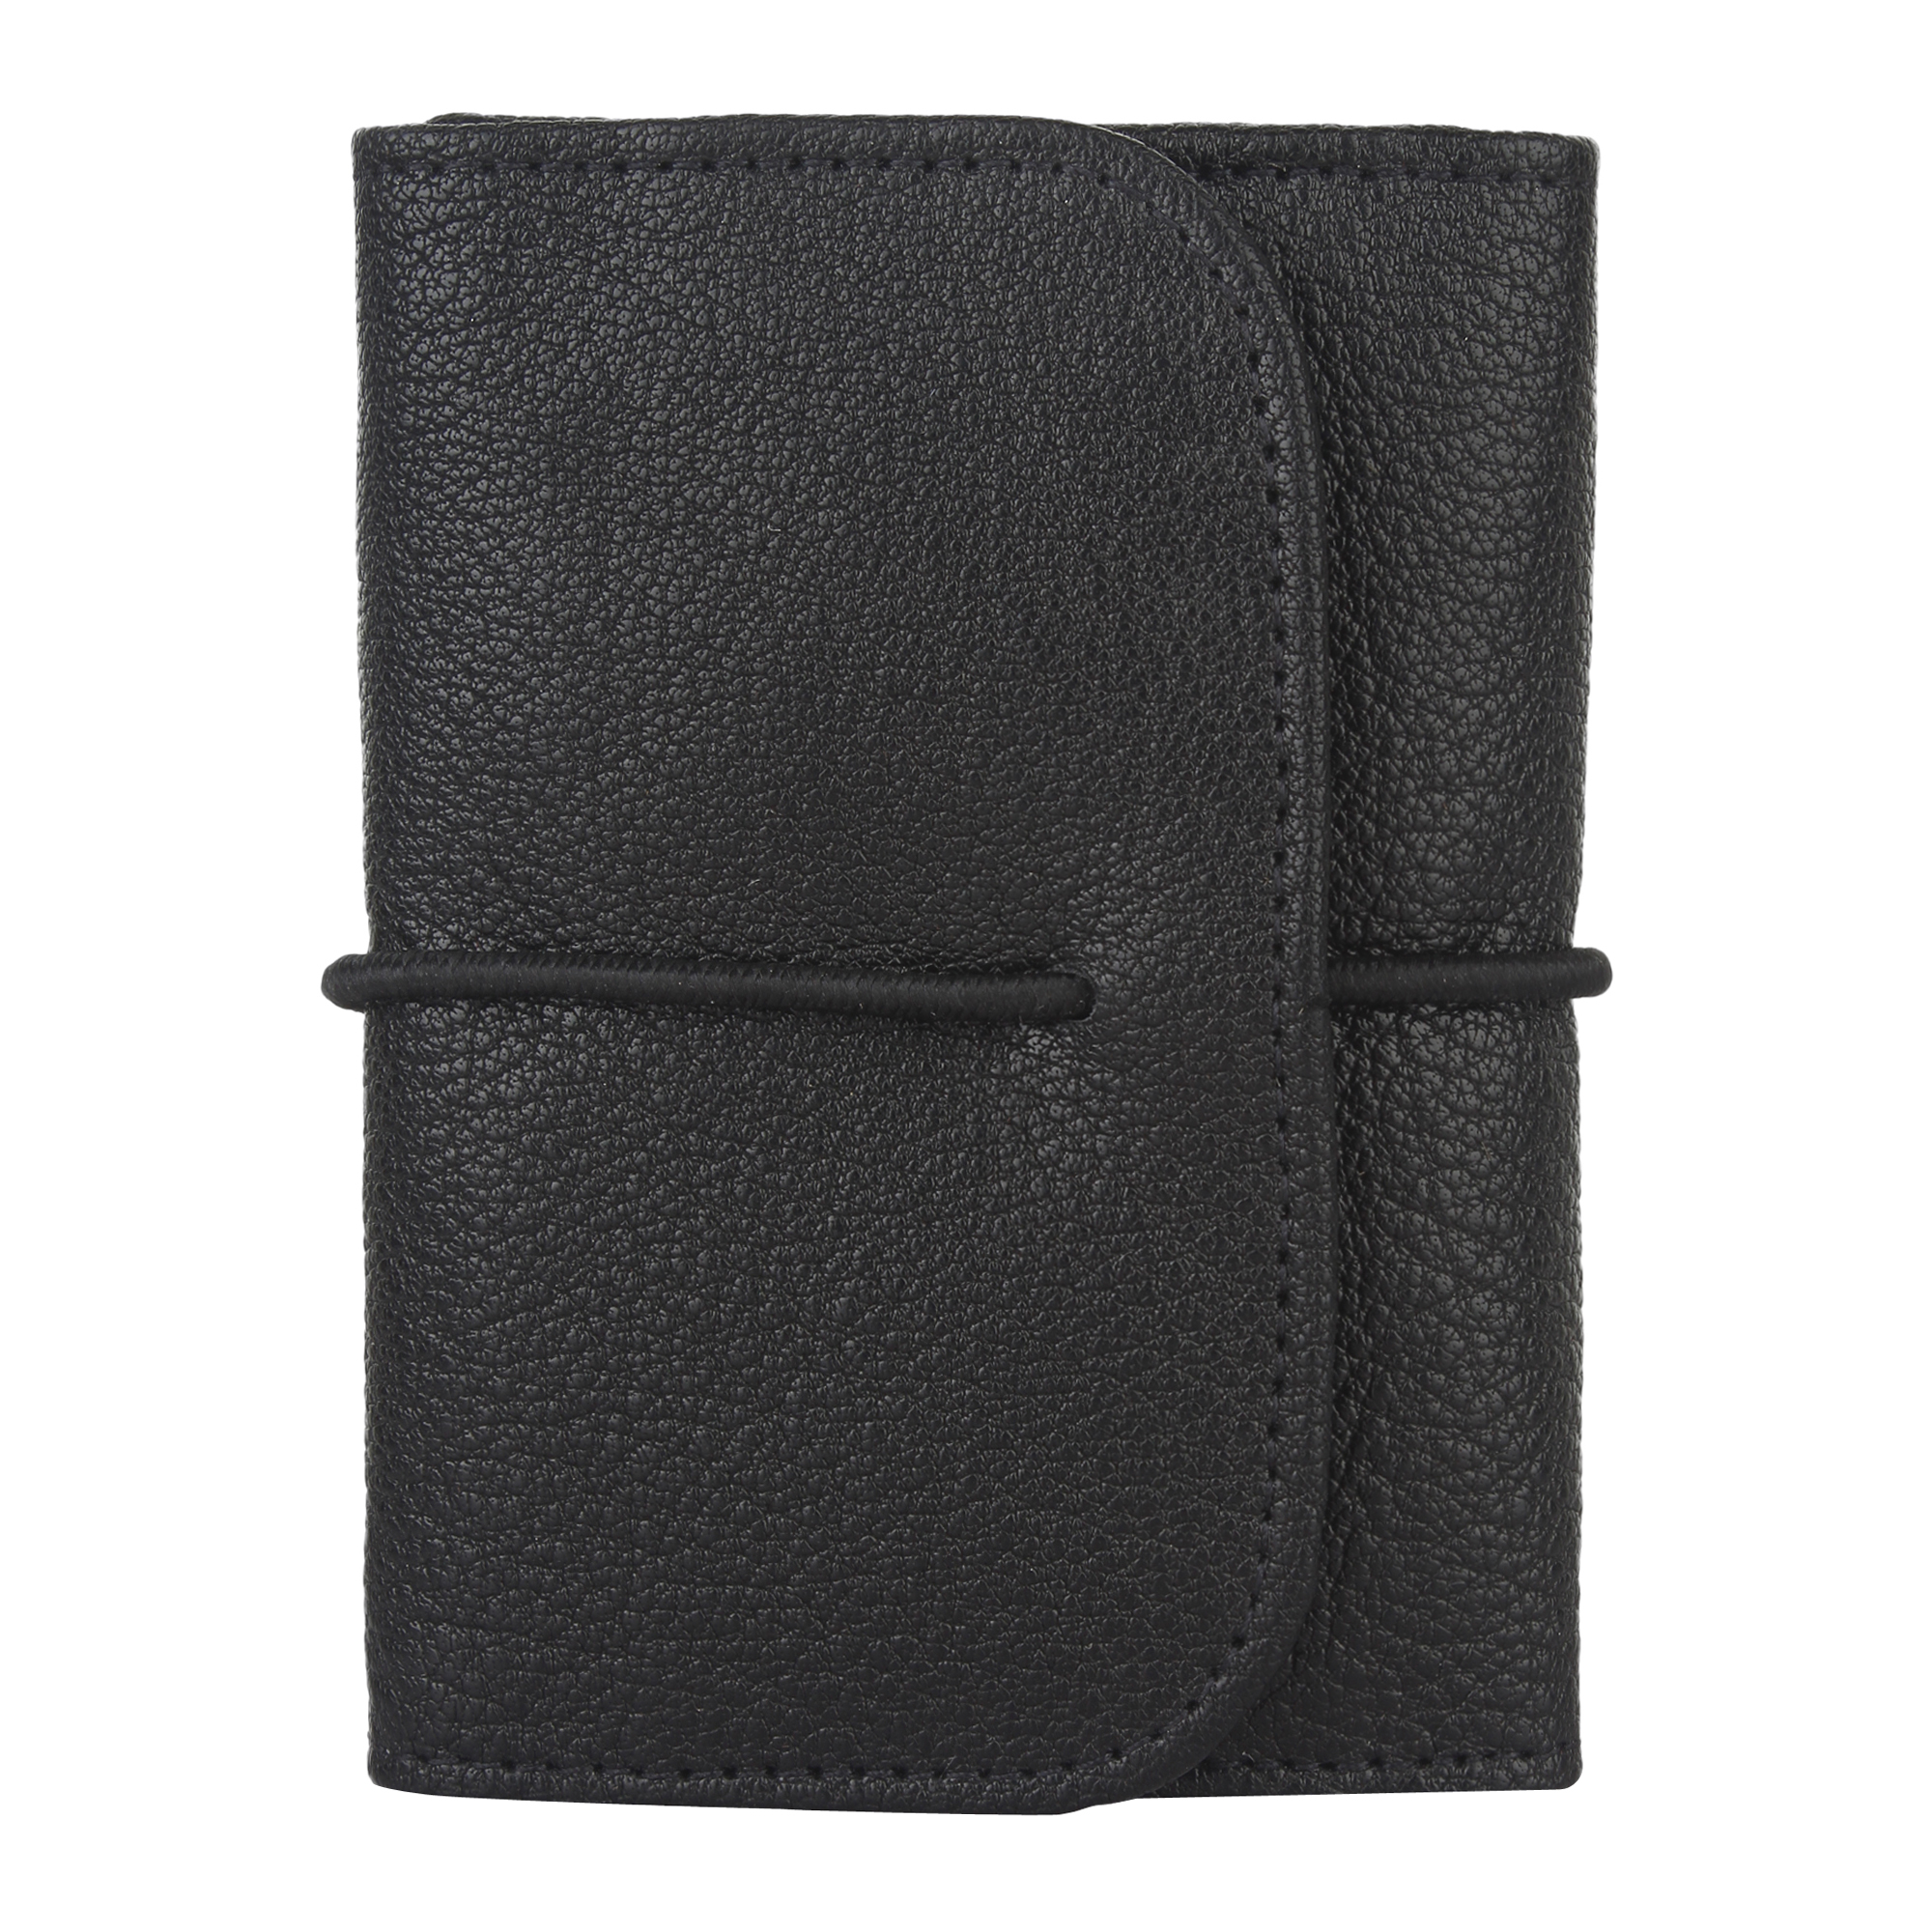 Leather Card Holder Wallet Manufacturers In Germany, Card Holder Wallet Suppliers In Germany, Card Holder Wallet Wholesalers In Germany, Card Holder Wallet Traders In Germany